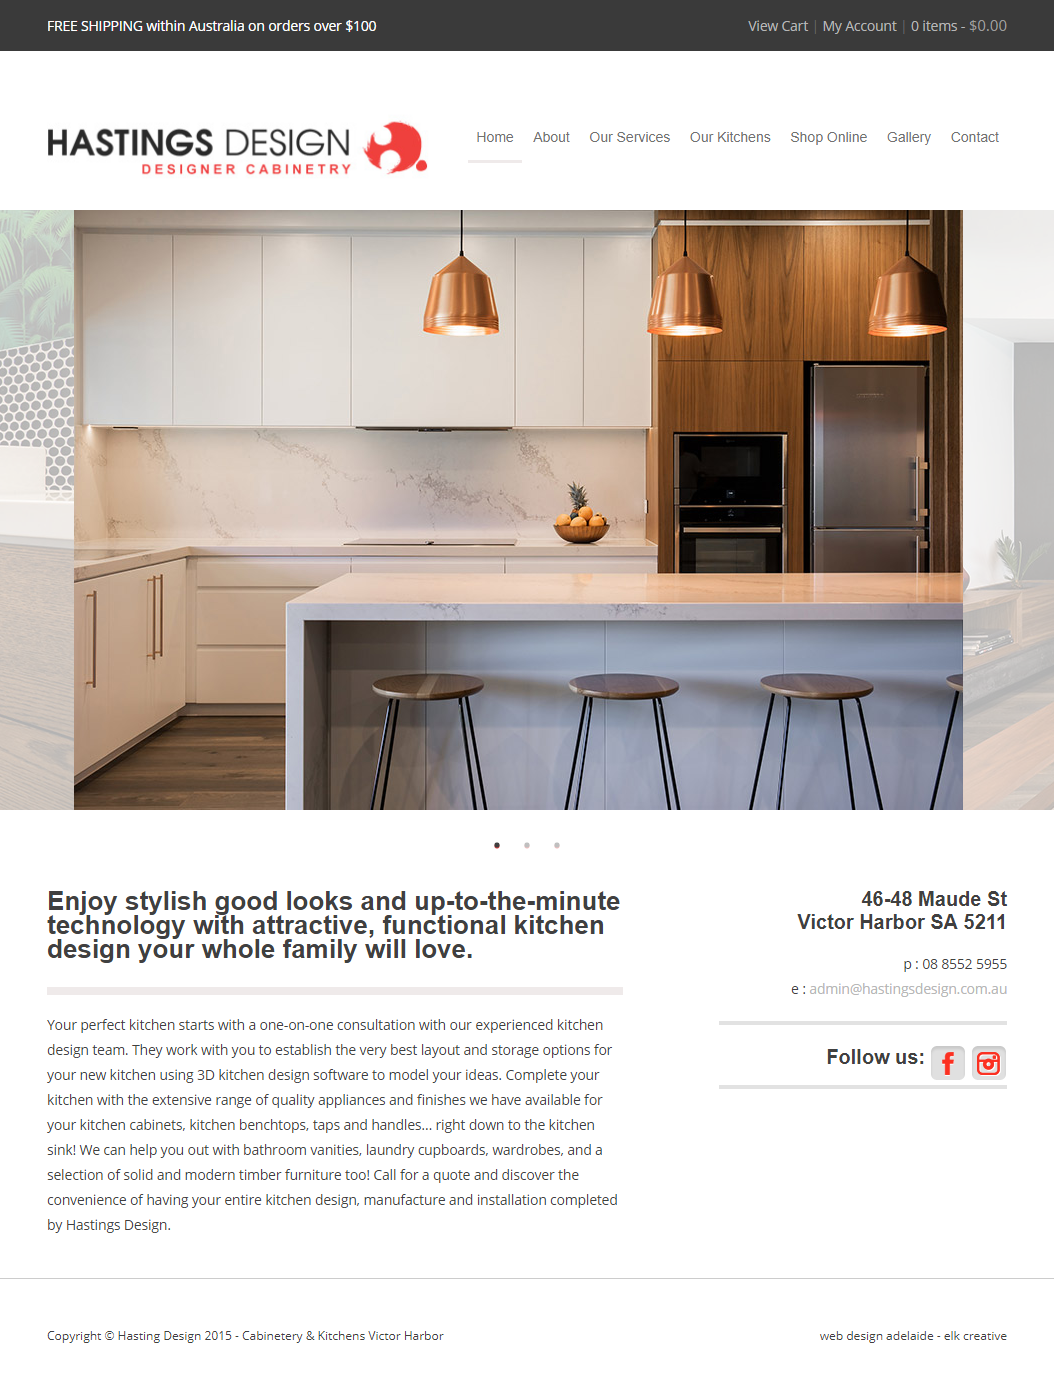 Hastings Design - Website Copy